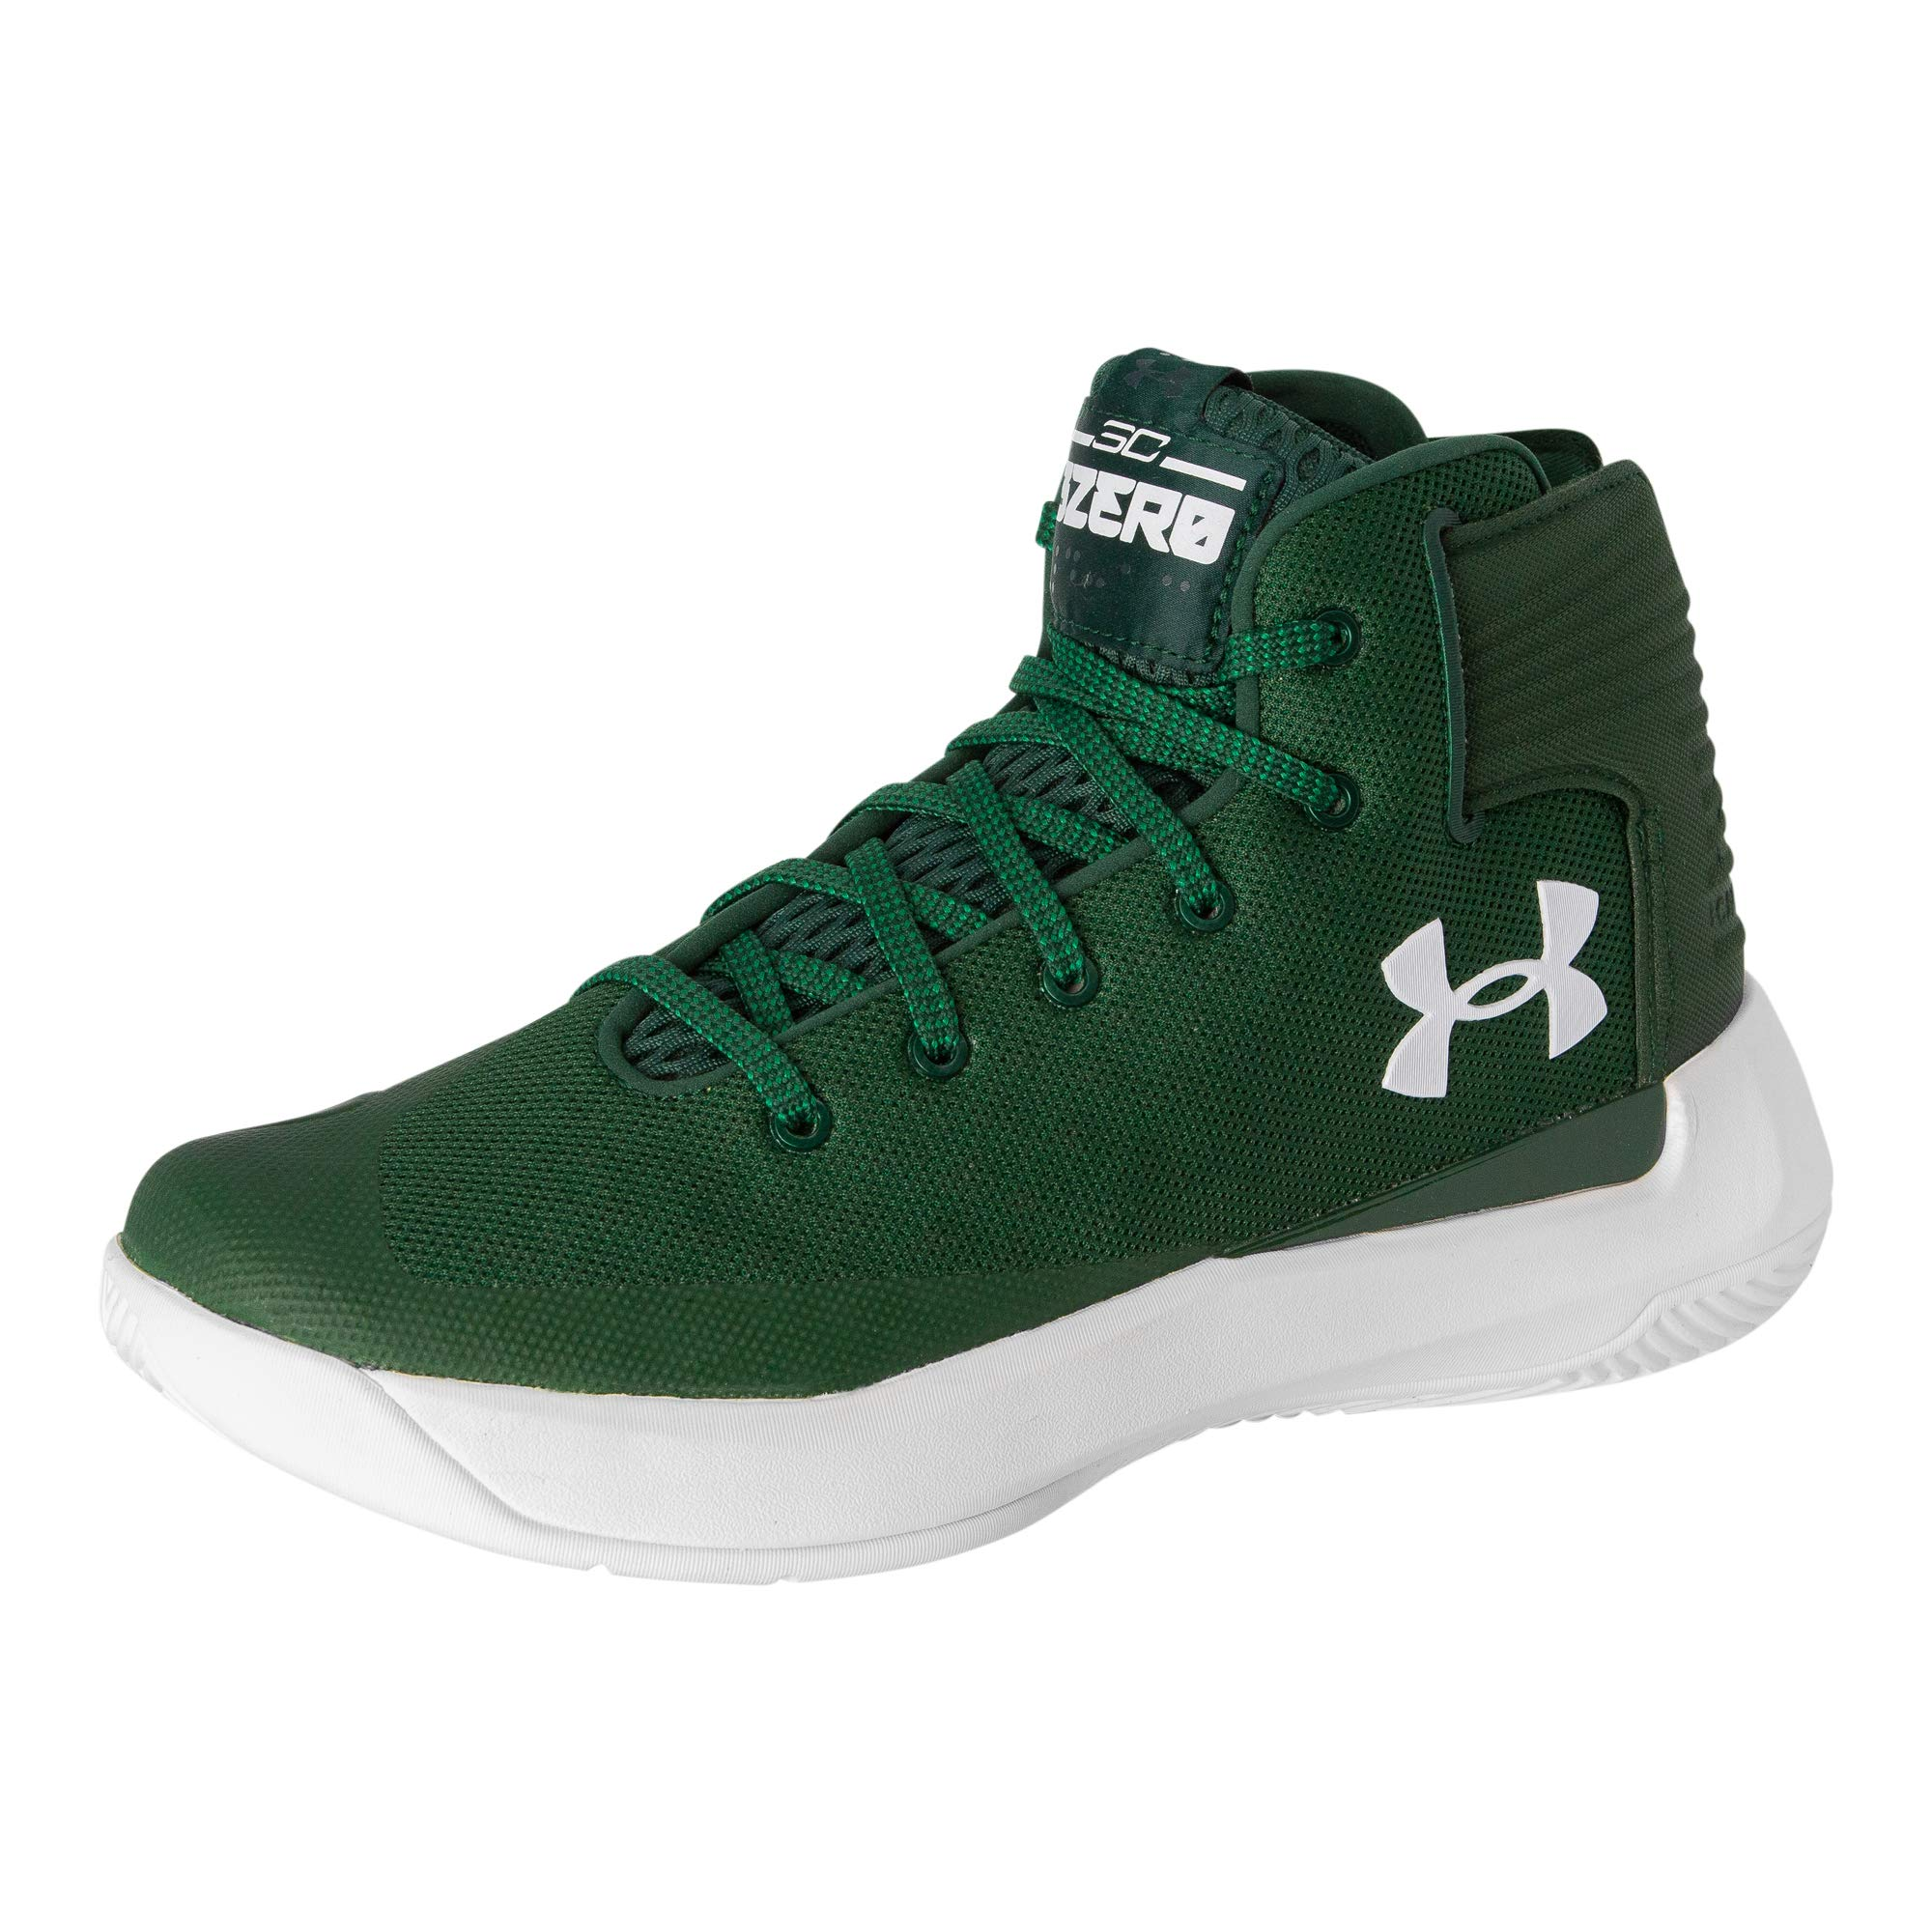 743611c8022 Galleon - Under Armour Kids Boy s UA GS Curry 3ZERO Basketball Shoes (7 M  US Big Kid